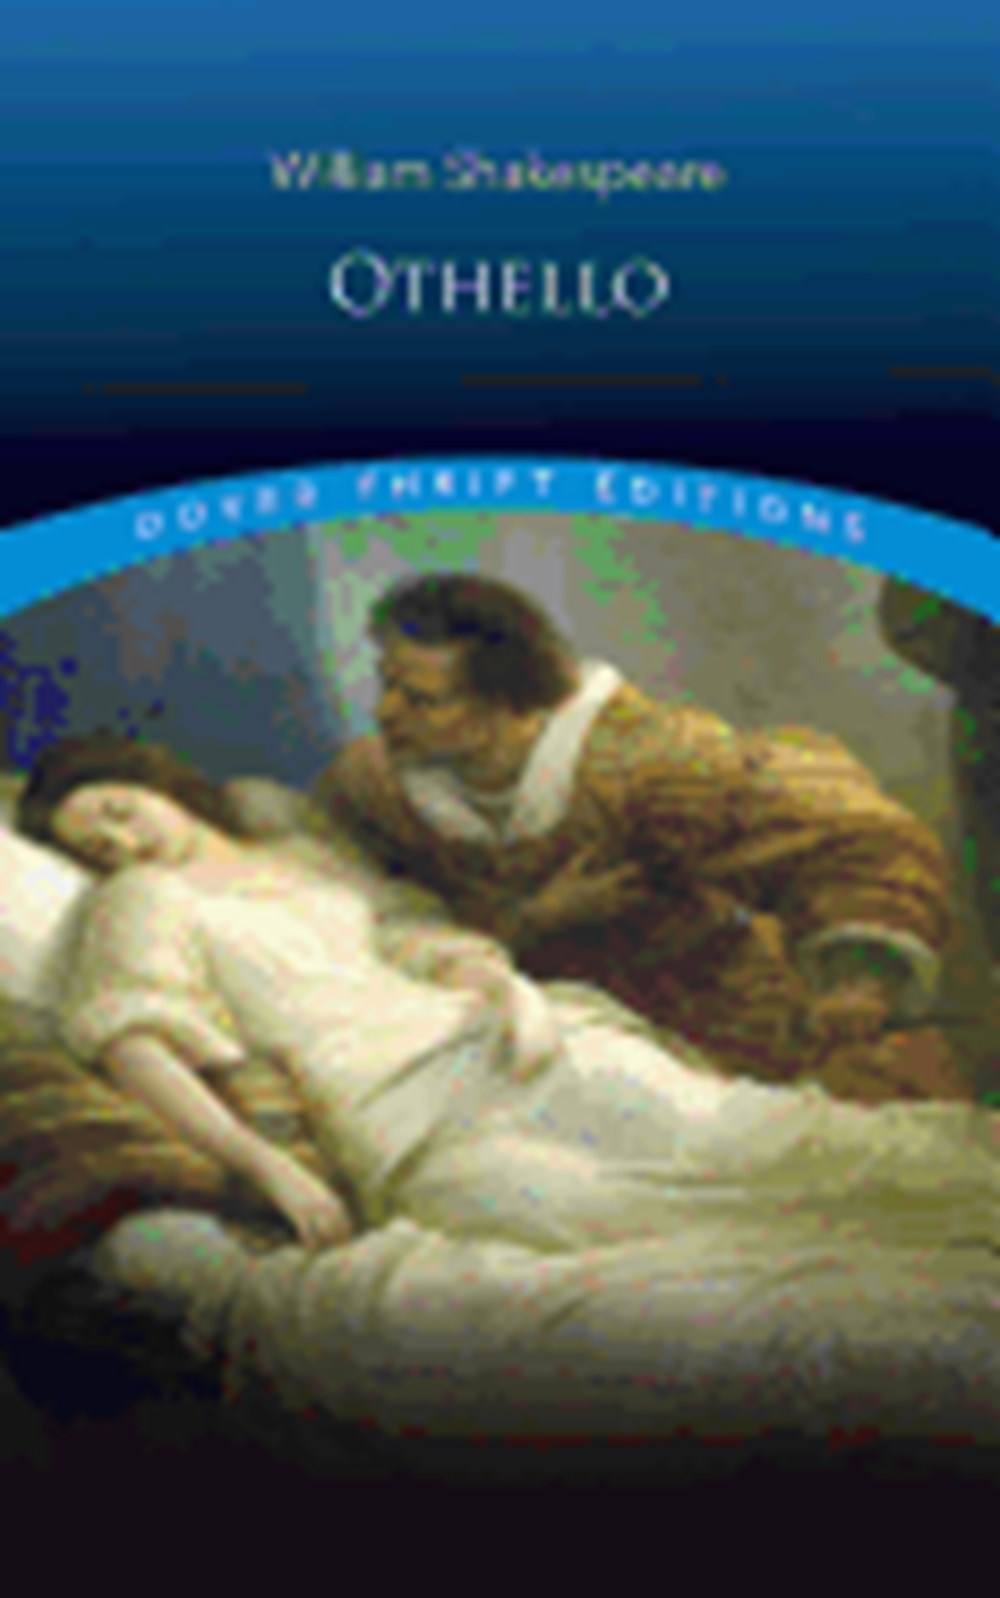 Othello Revised Edition (Revised)